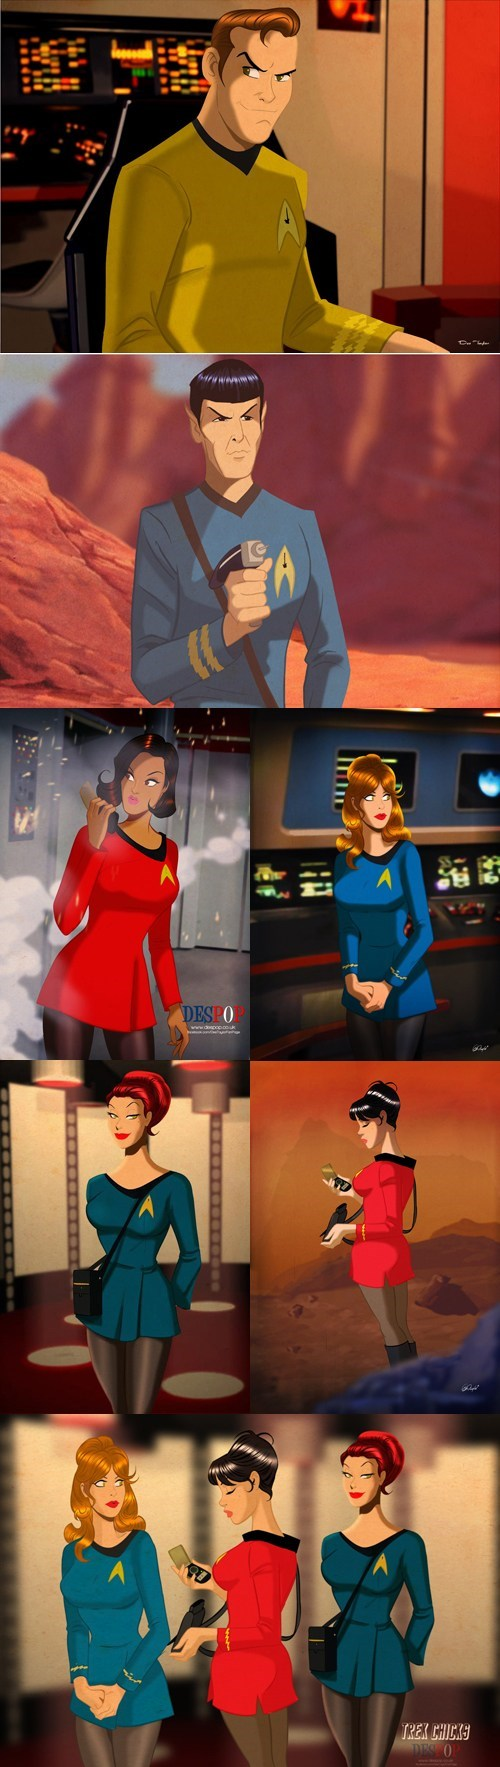 Captain Kirk Spock Fan Art uhura pin ups Star Trek - 6763248128